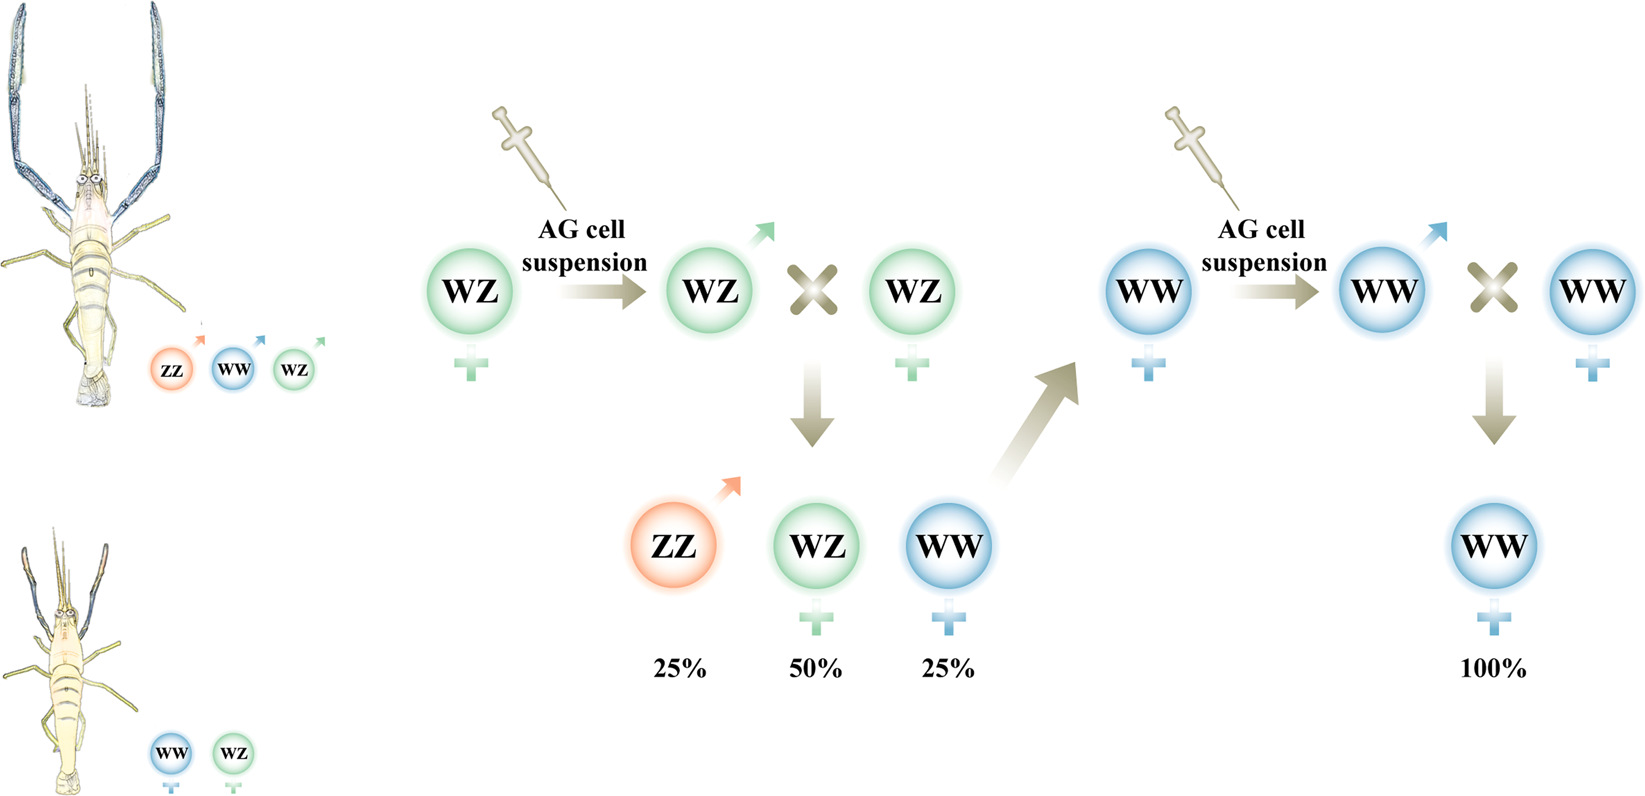 Production of WW males lacking the masculine Z chromosome